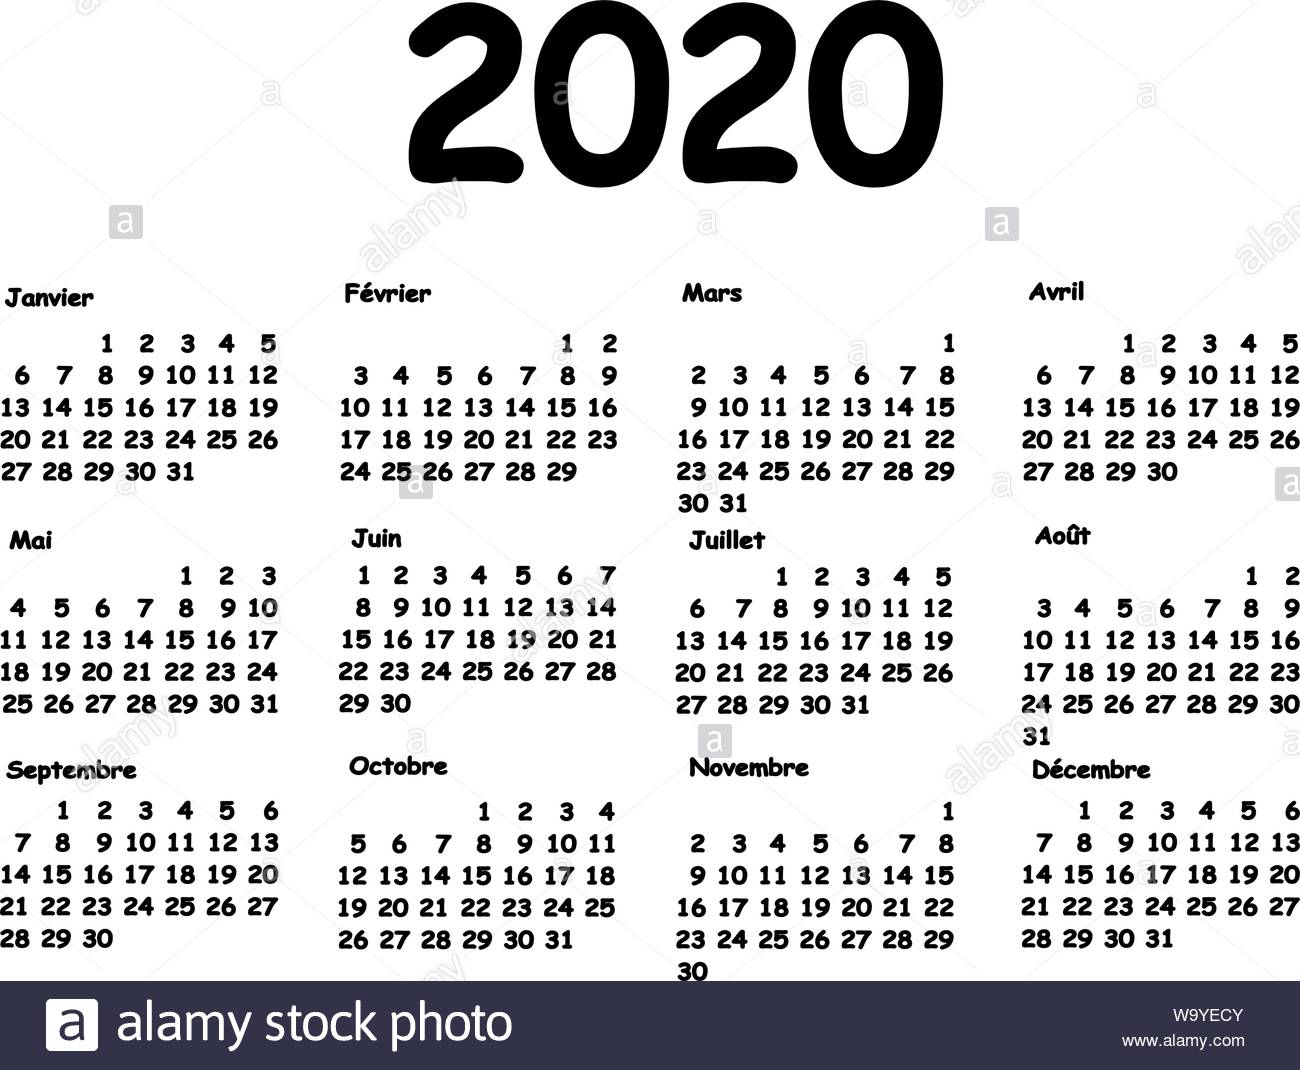 Calendar 2020 Grid French Language. Monthly Planning For